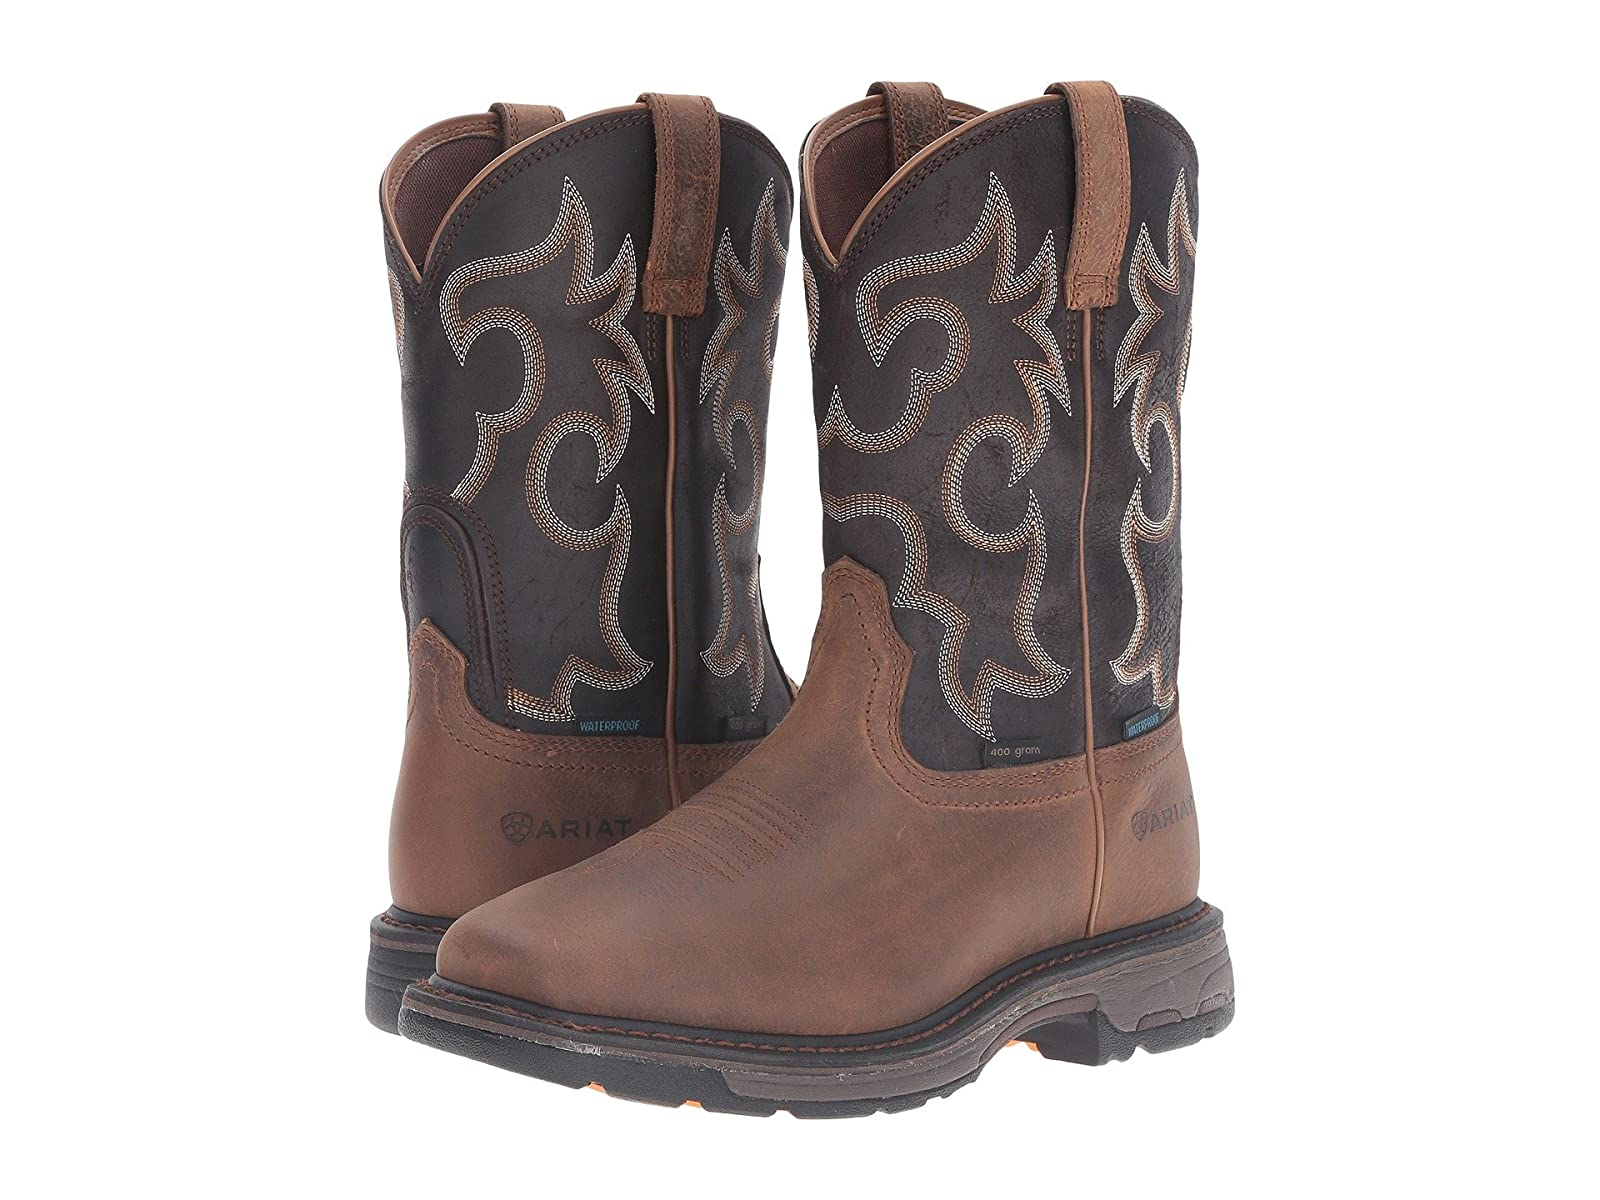 Ariat Workhog Workhog Ariat Wide Square WP Insulated 7f2341